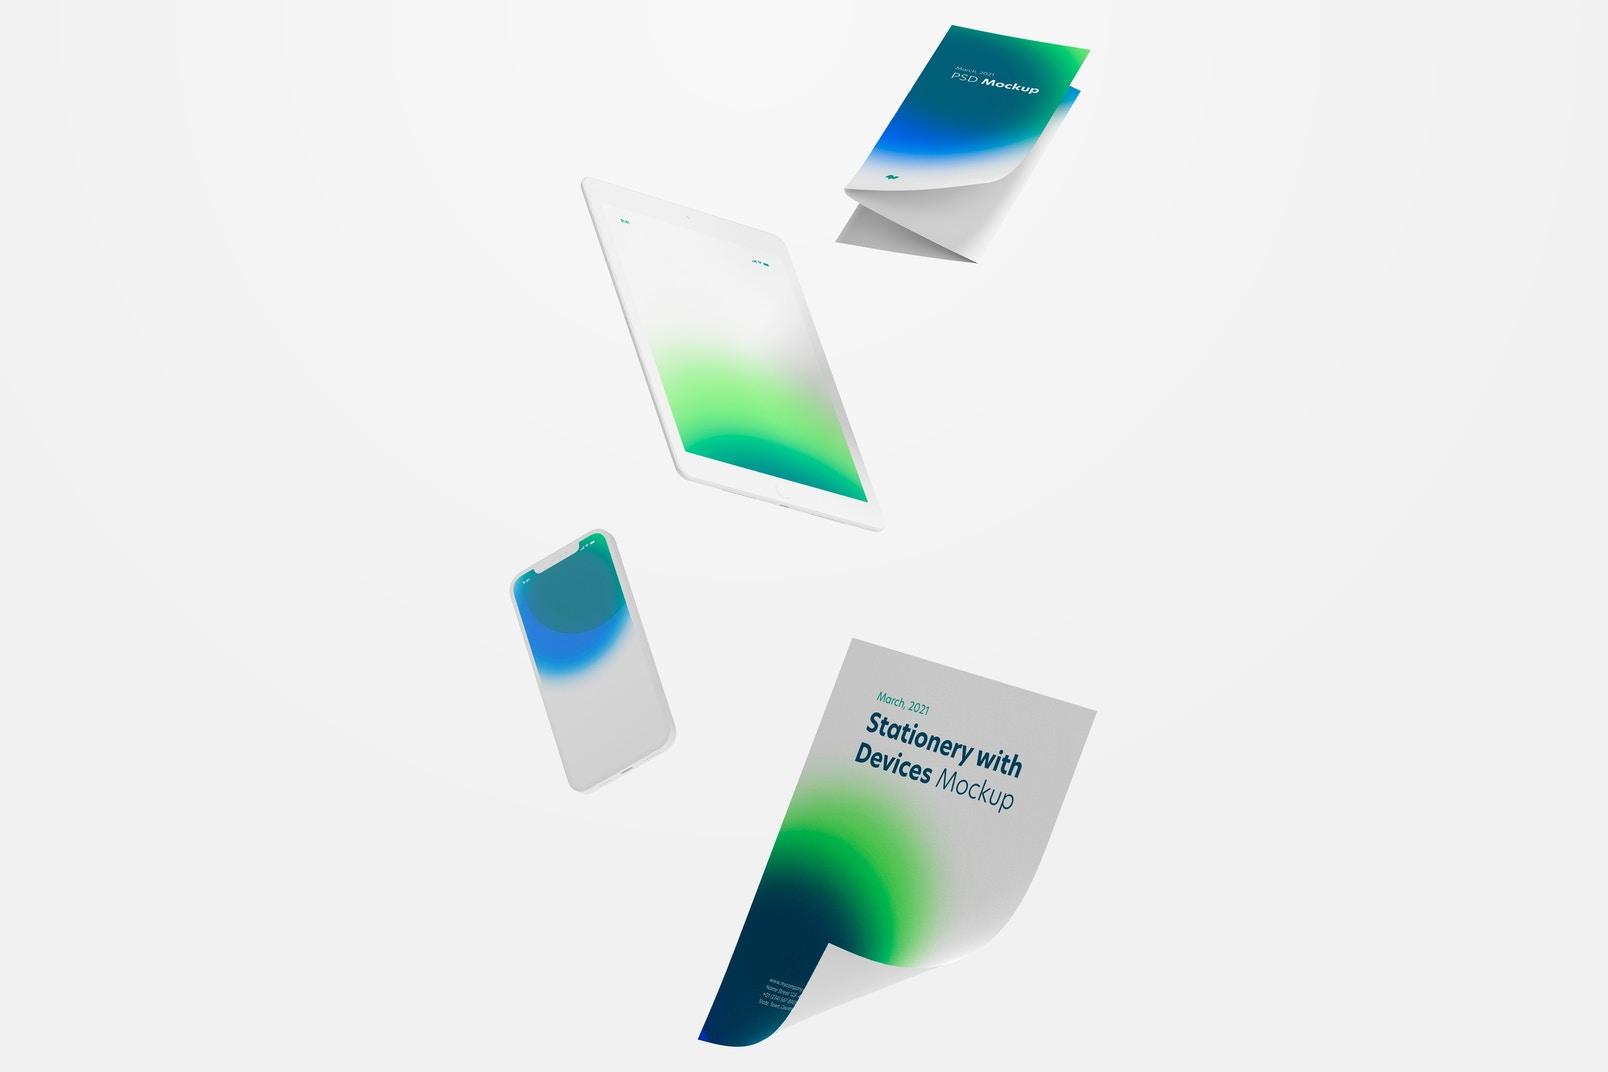 Stationery with Devices Mockup, Floating